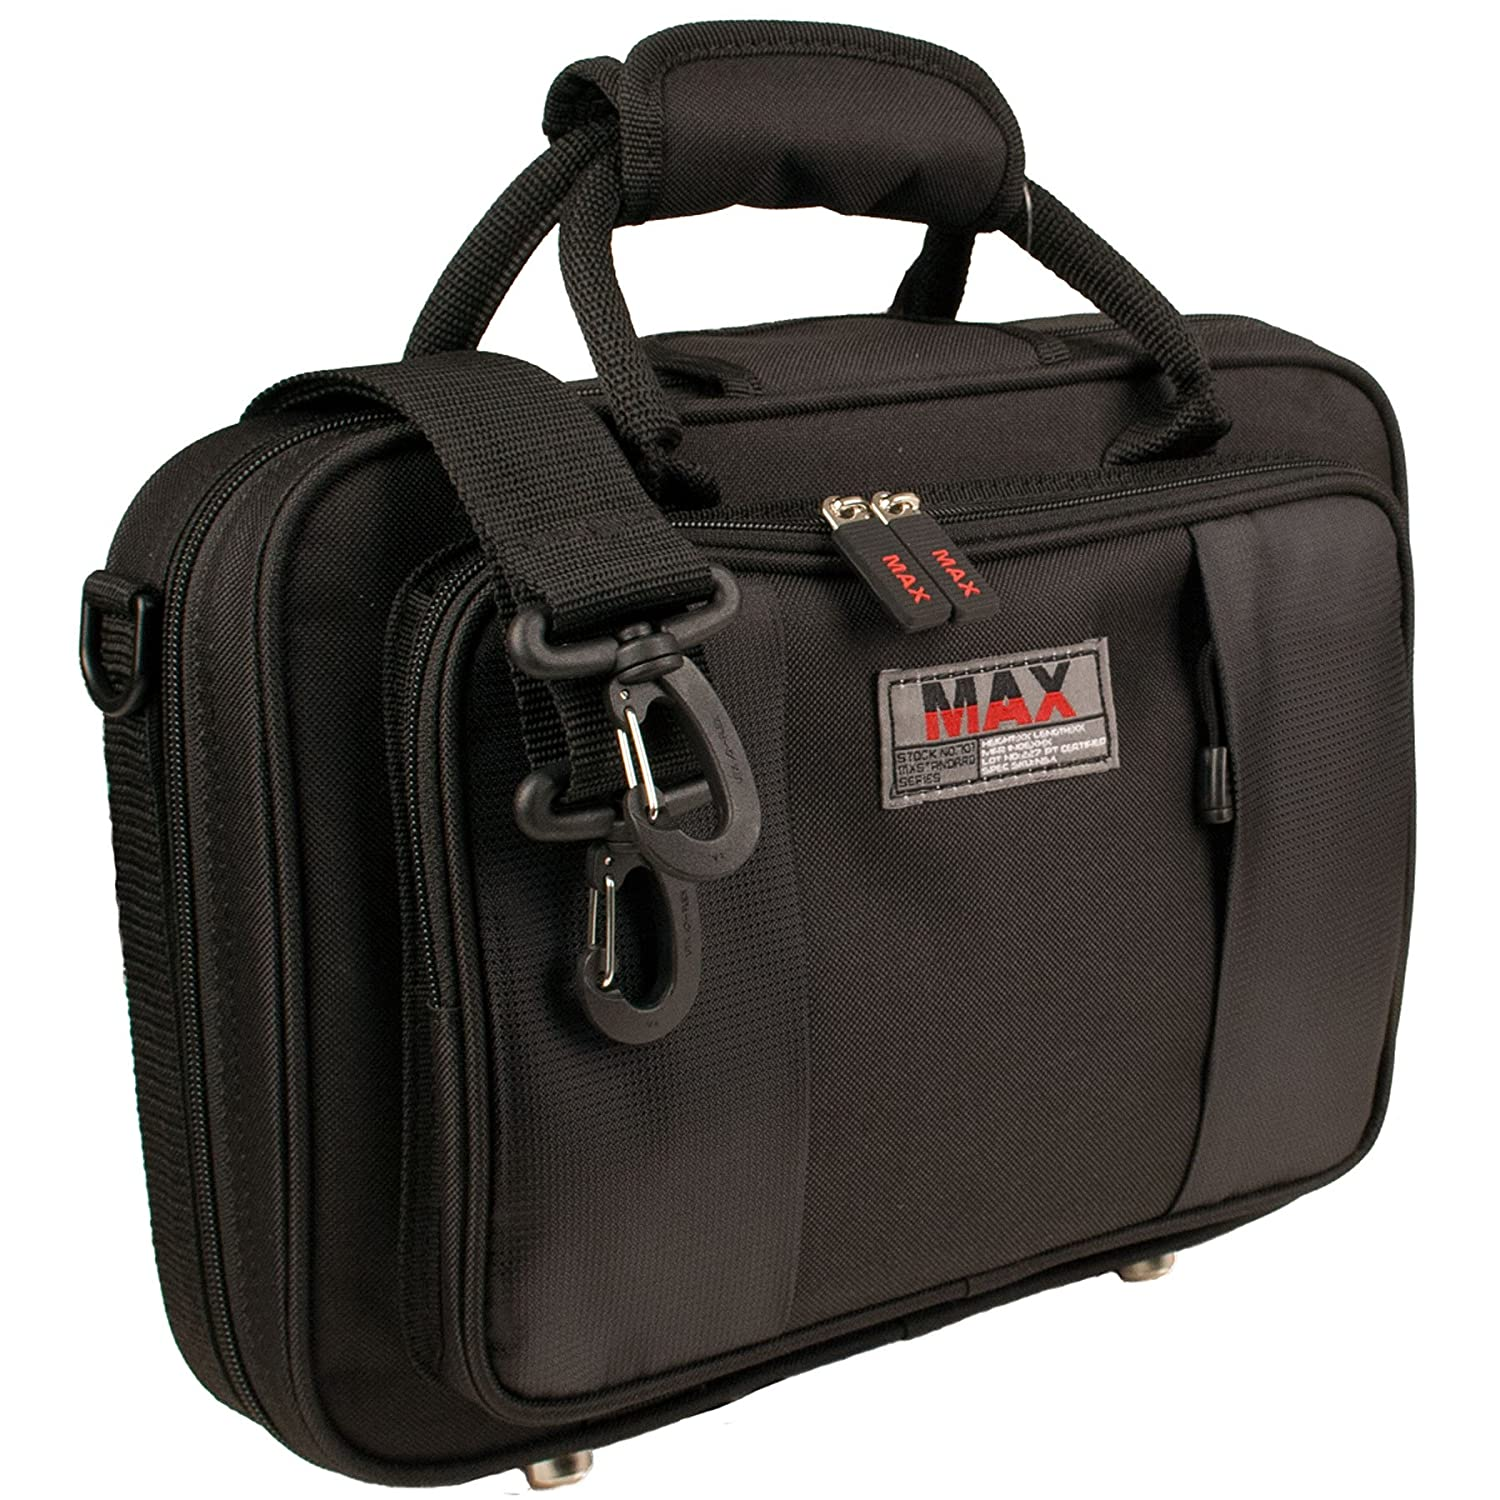 Protec Oboe MAX Case (Black), Model MX315 Pro Tec